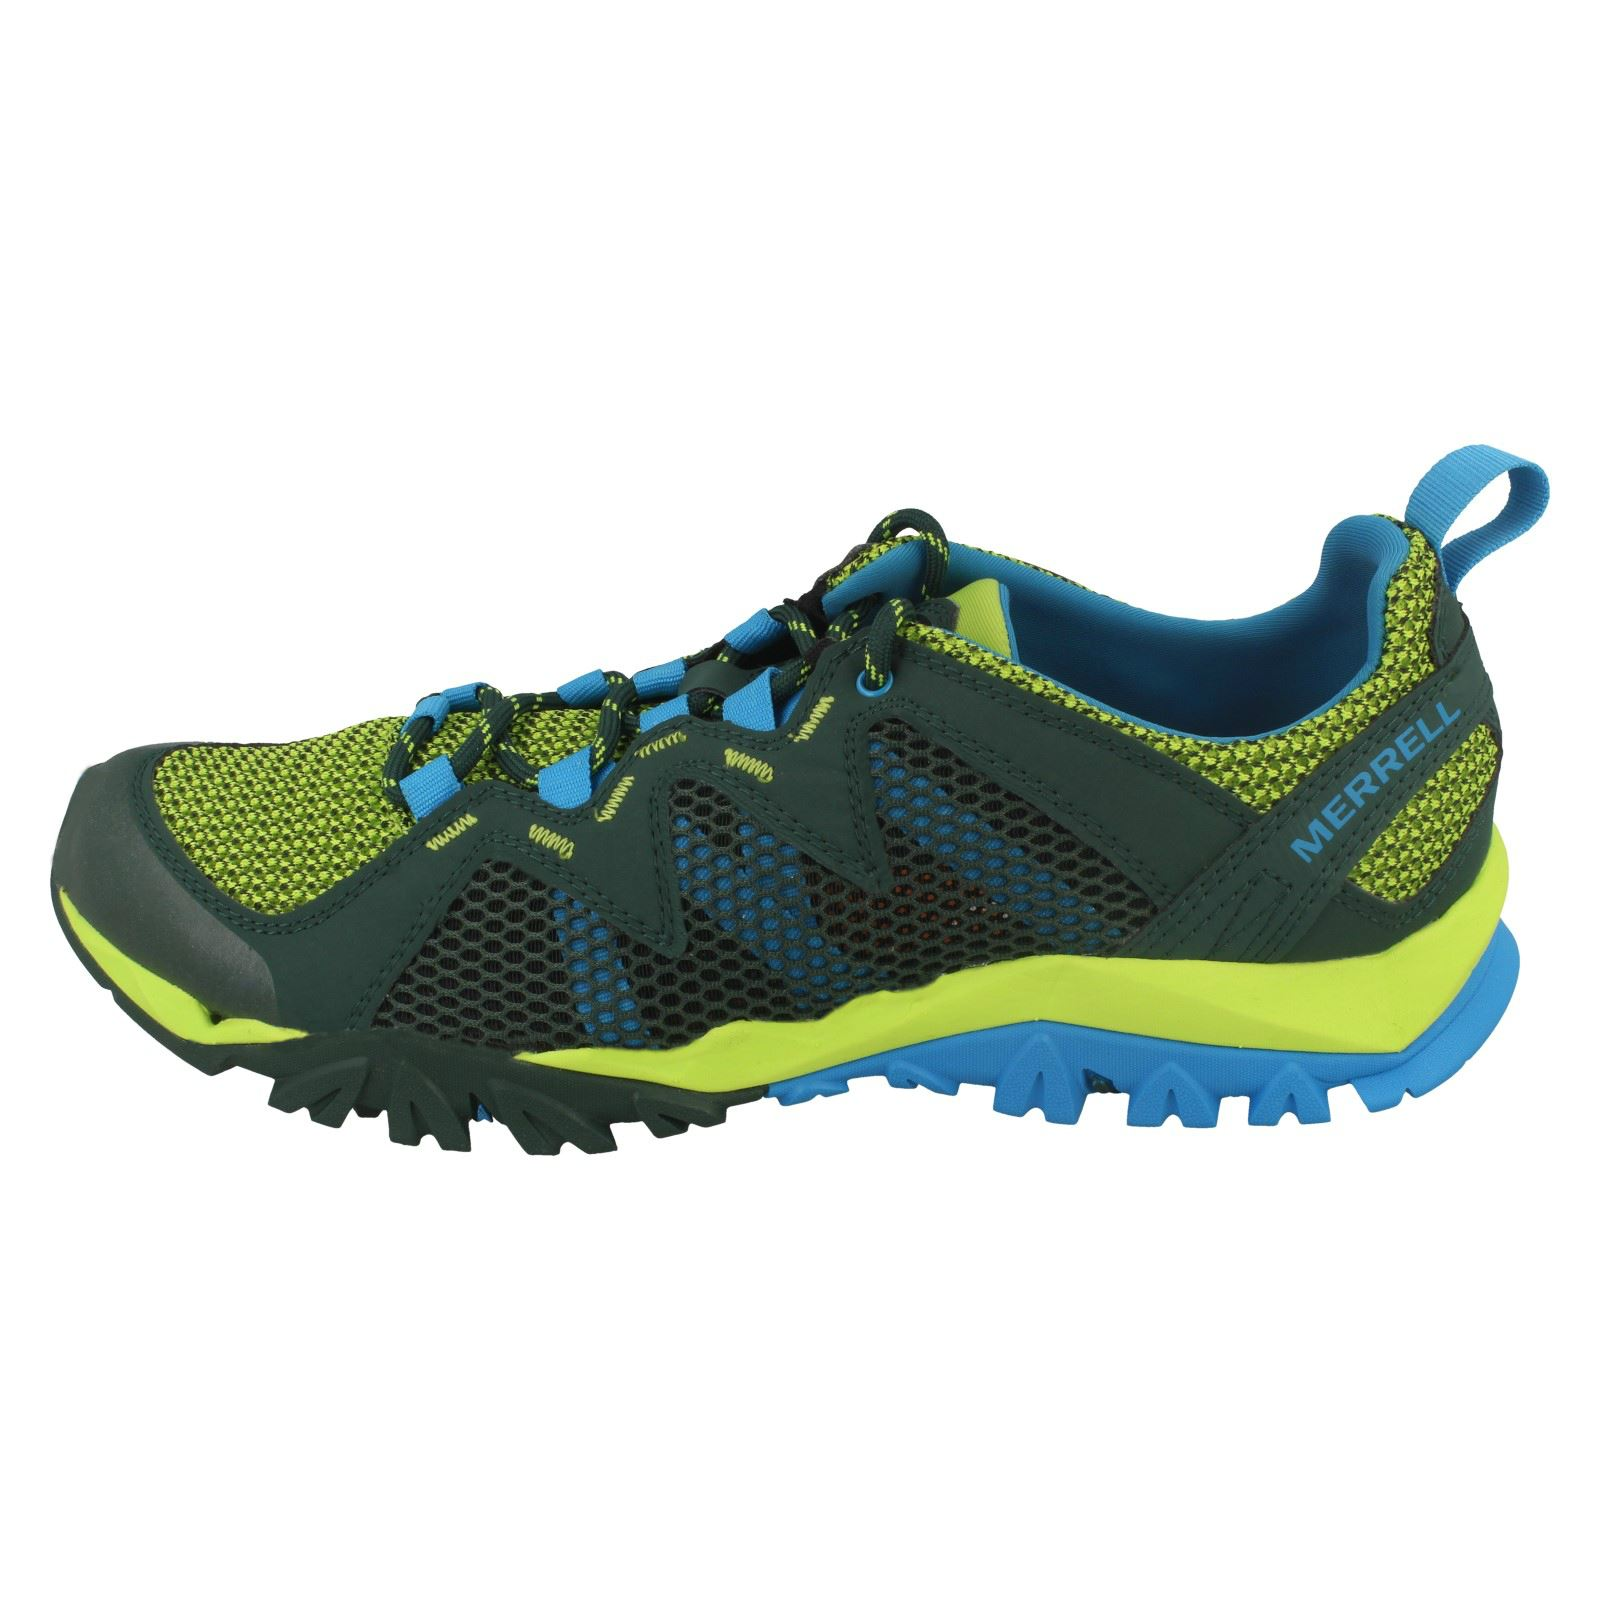 2018 sneakers bright n colour quality Details about Mens Merrell Casual Trainers 'Tetrex Rapid Crest J12859'